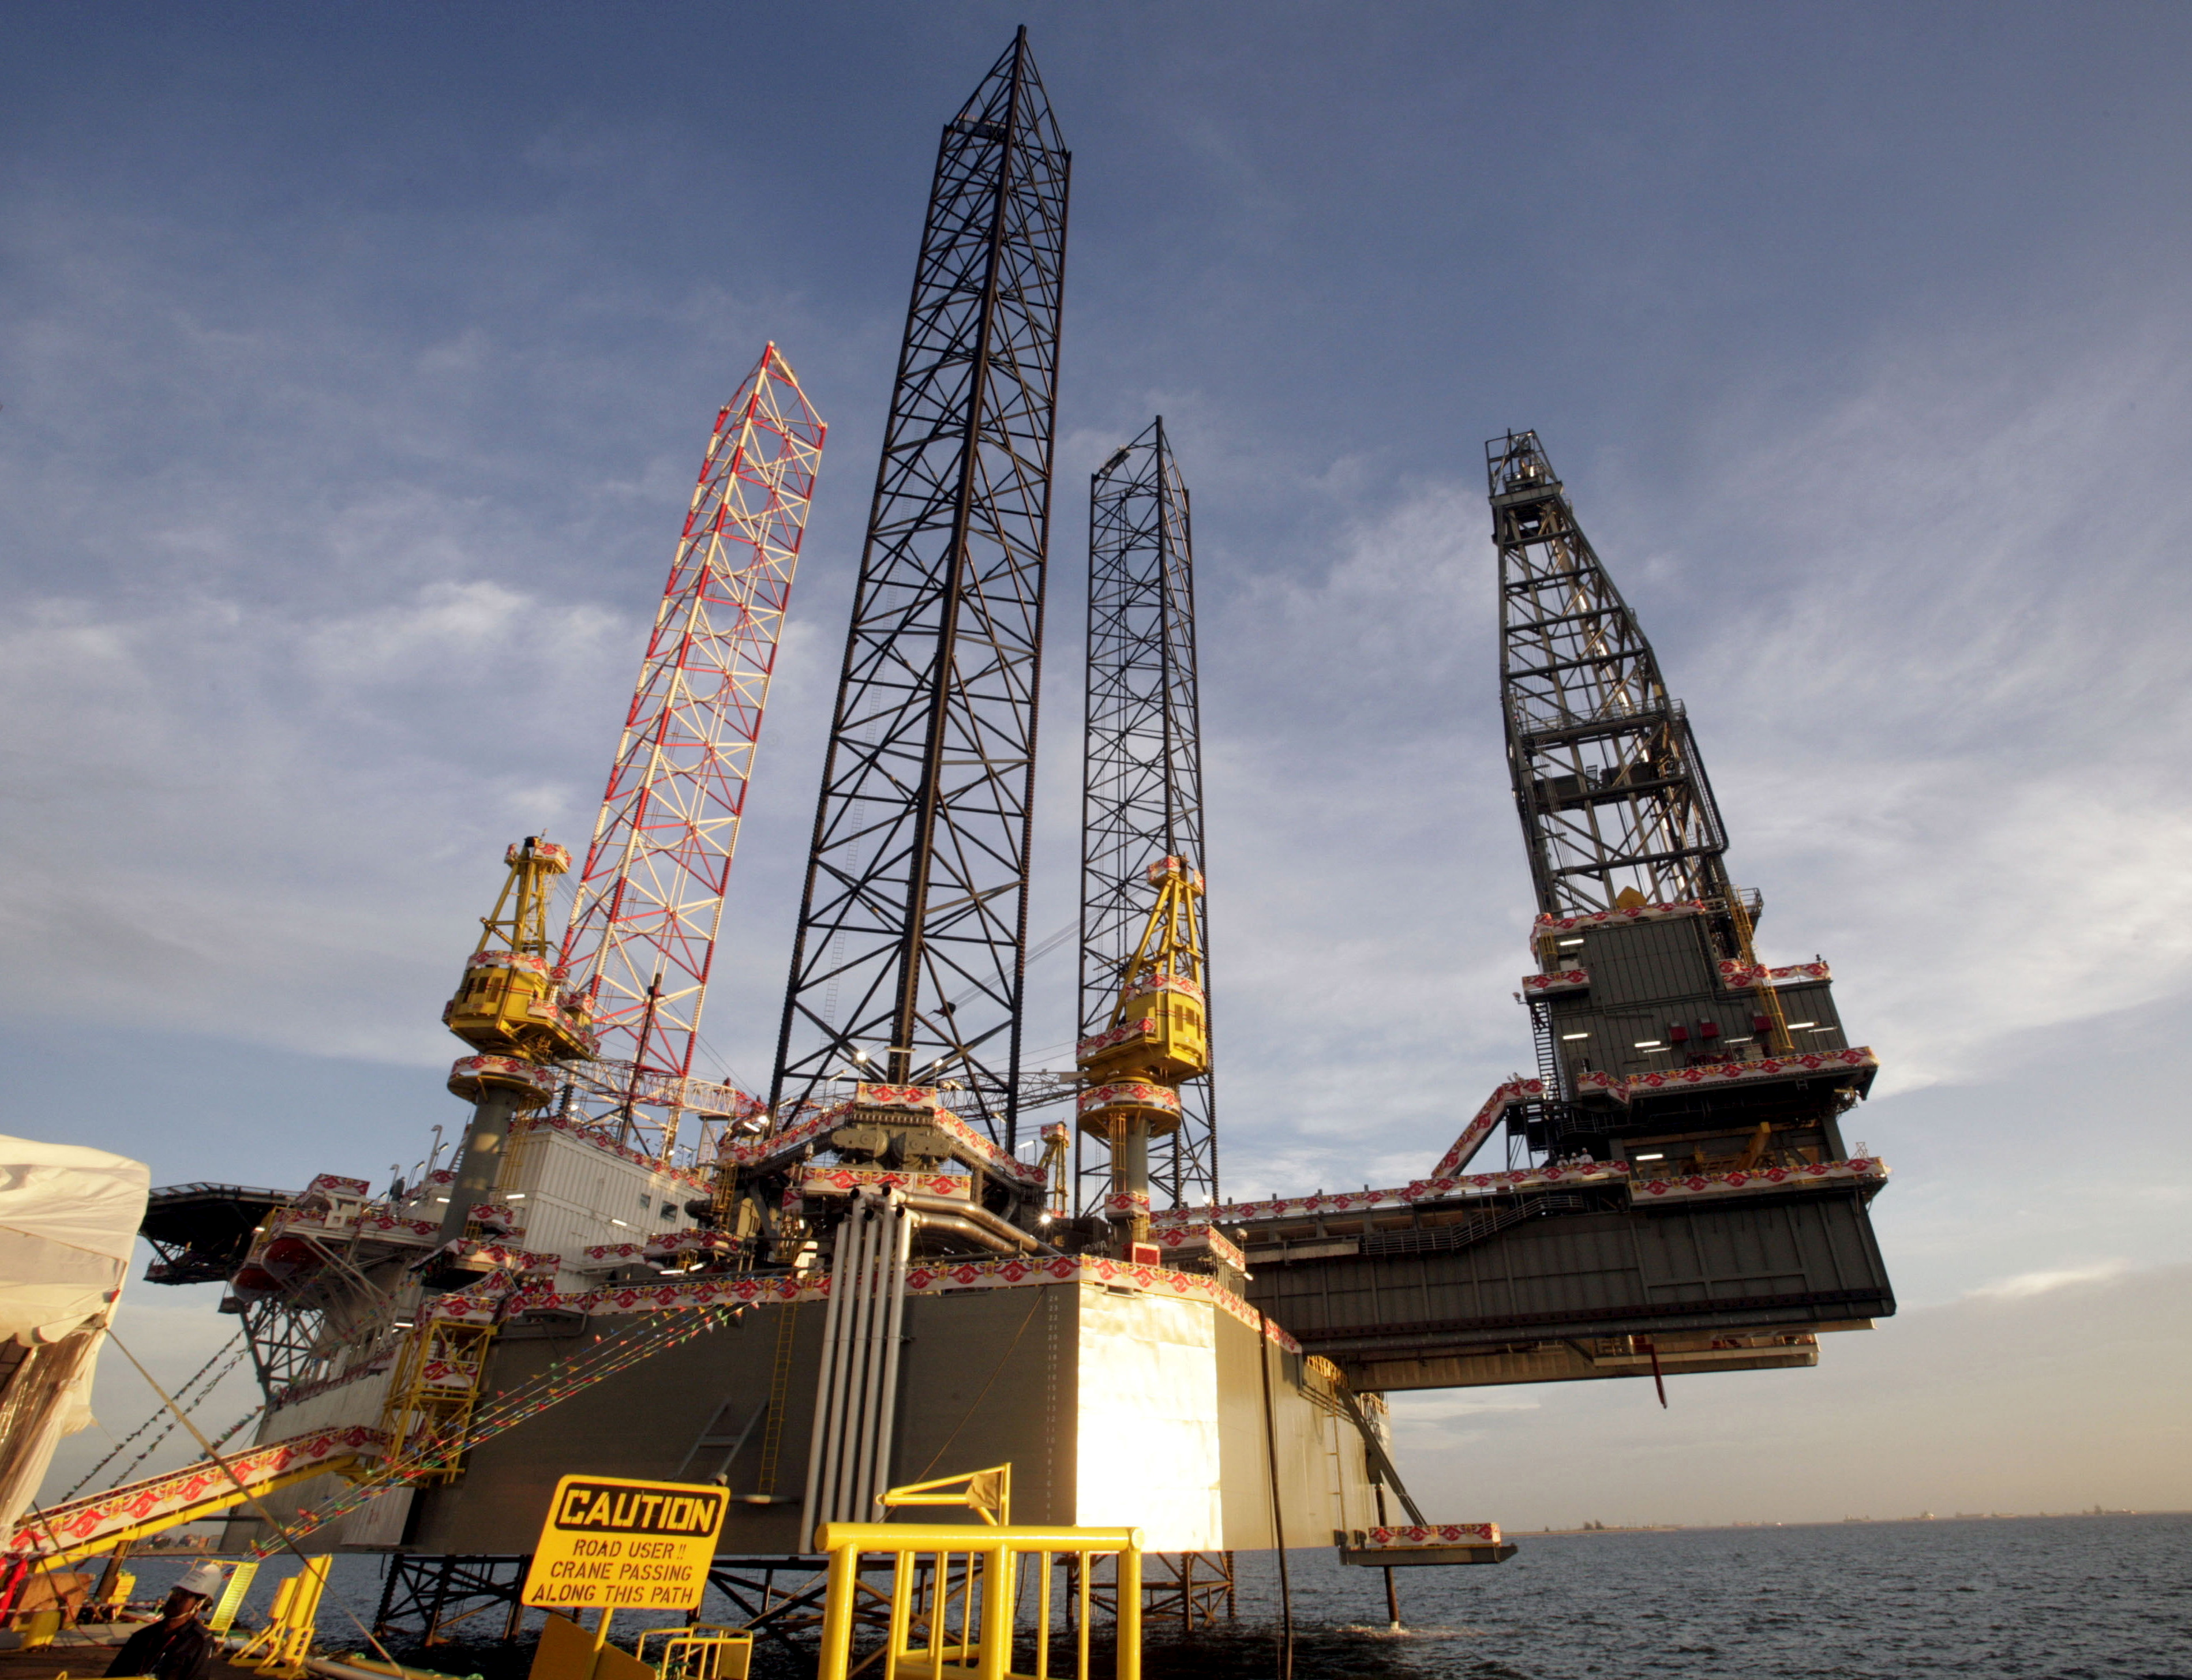 The SEADRILL 3, the first of four oil rigs that Keppel FELS is building for the same customer, is seen in Singapore in this April 21, 2006 file photo.  REUTERS/Luis Enrique Ascui/File Photo